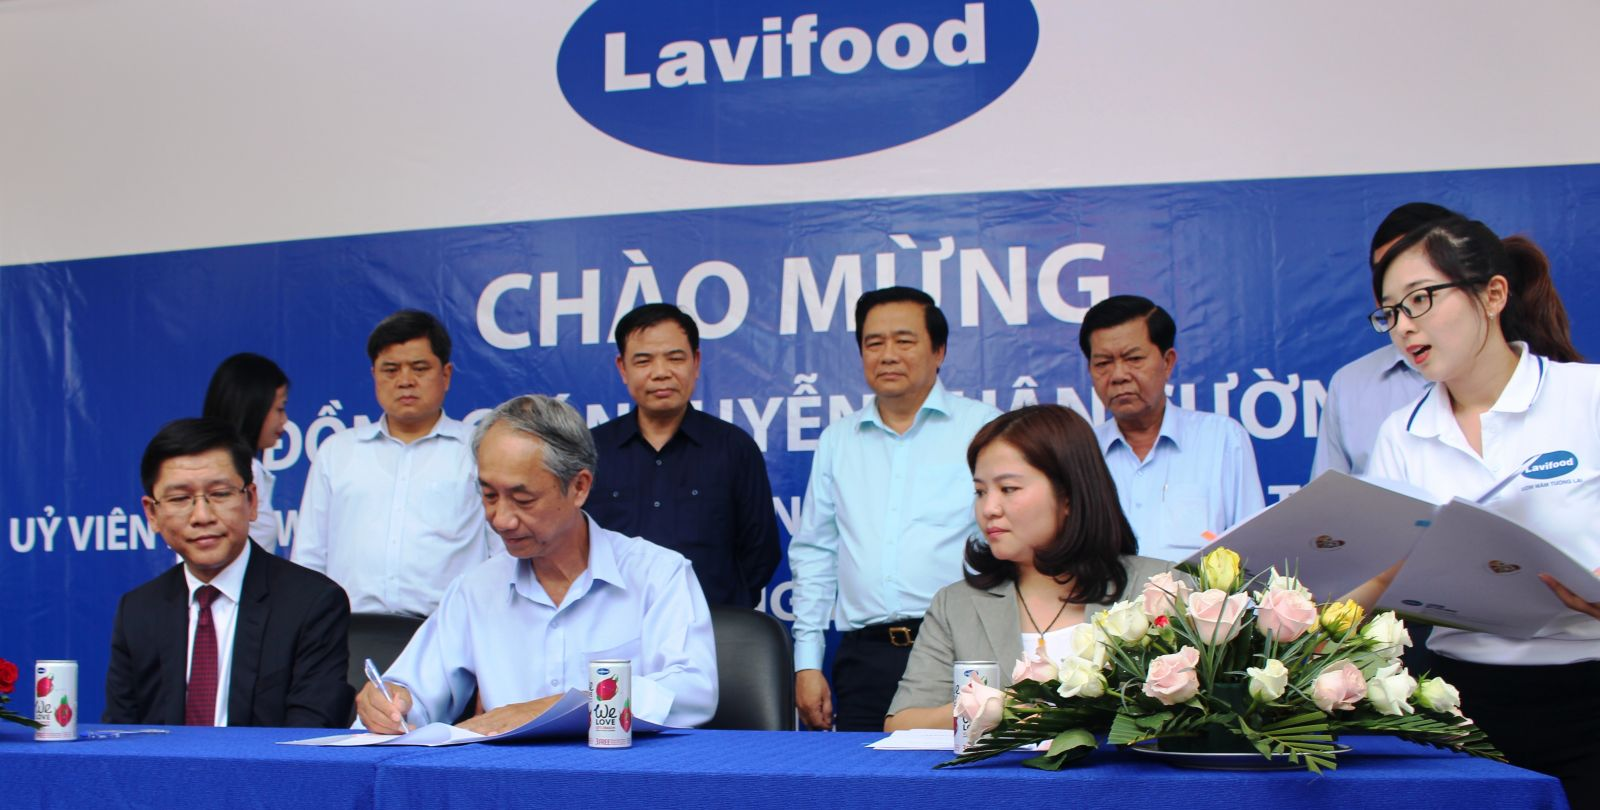 Minister Nguyen Xuan Cuong and the delegation witness the commitment of Vietnamese businesses and farmers to accompany the farmers.